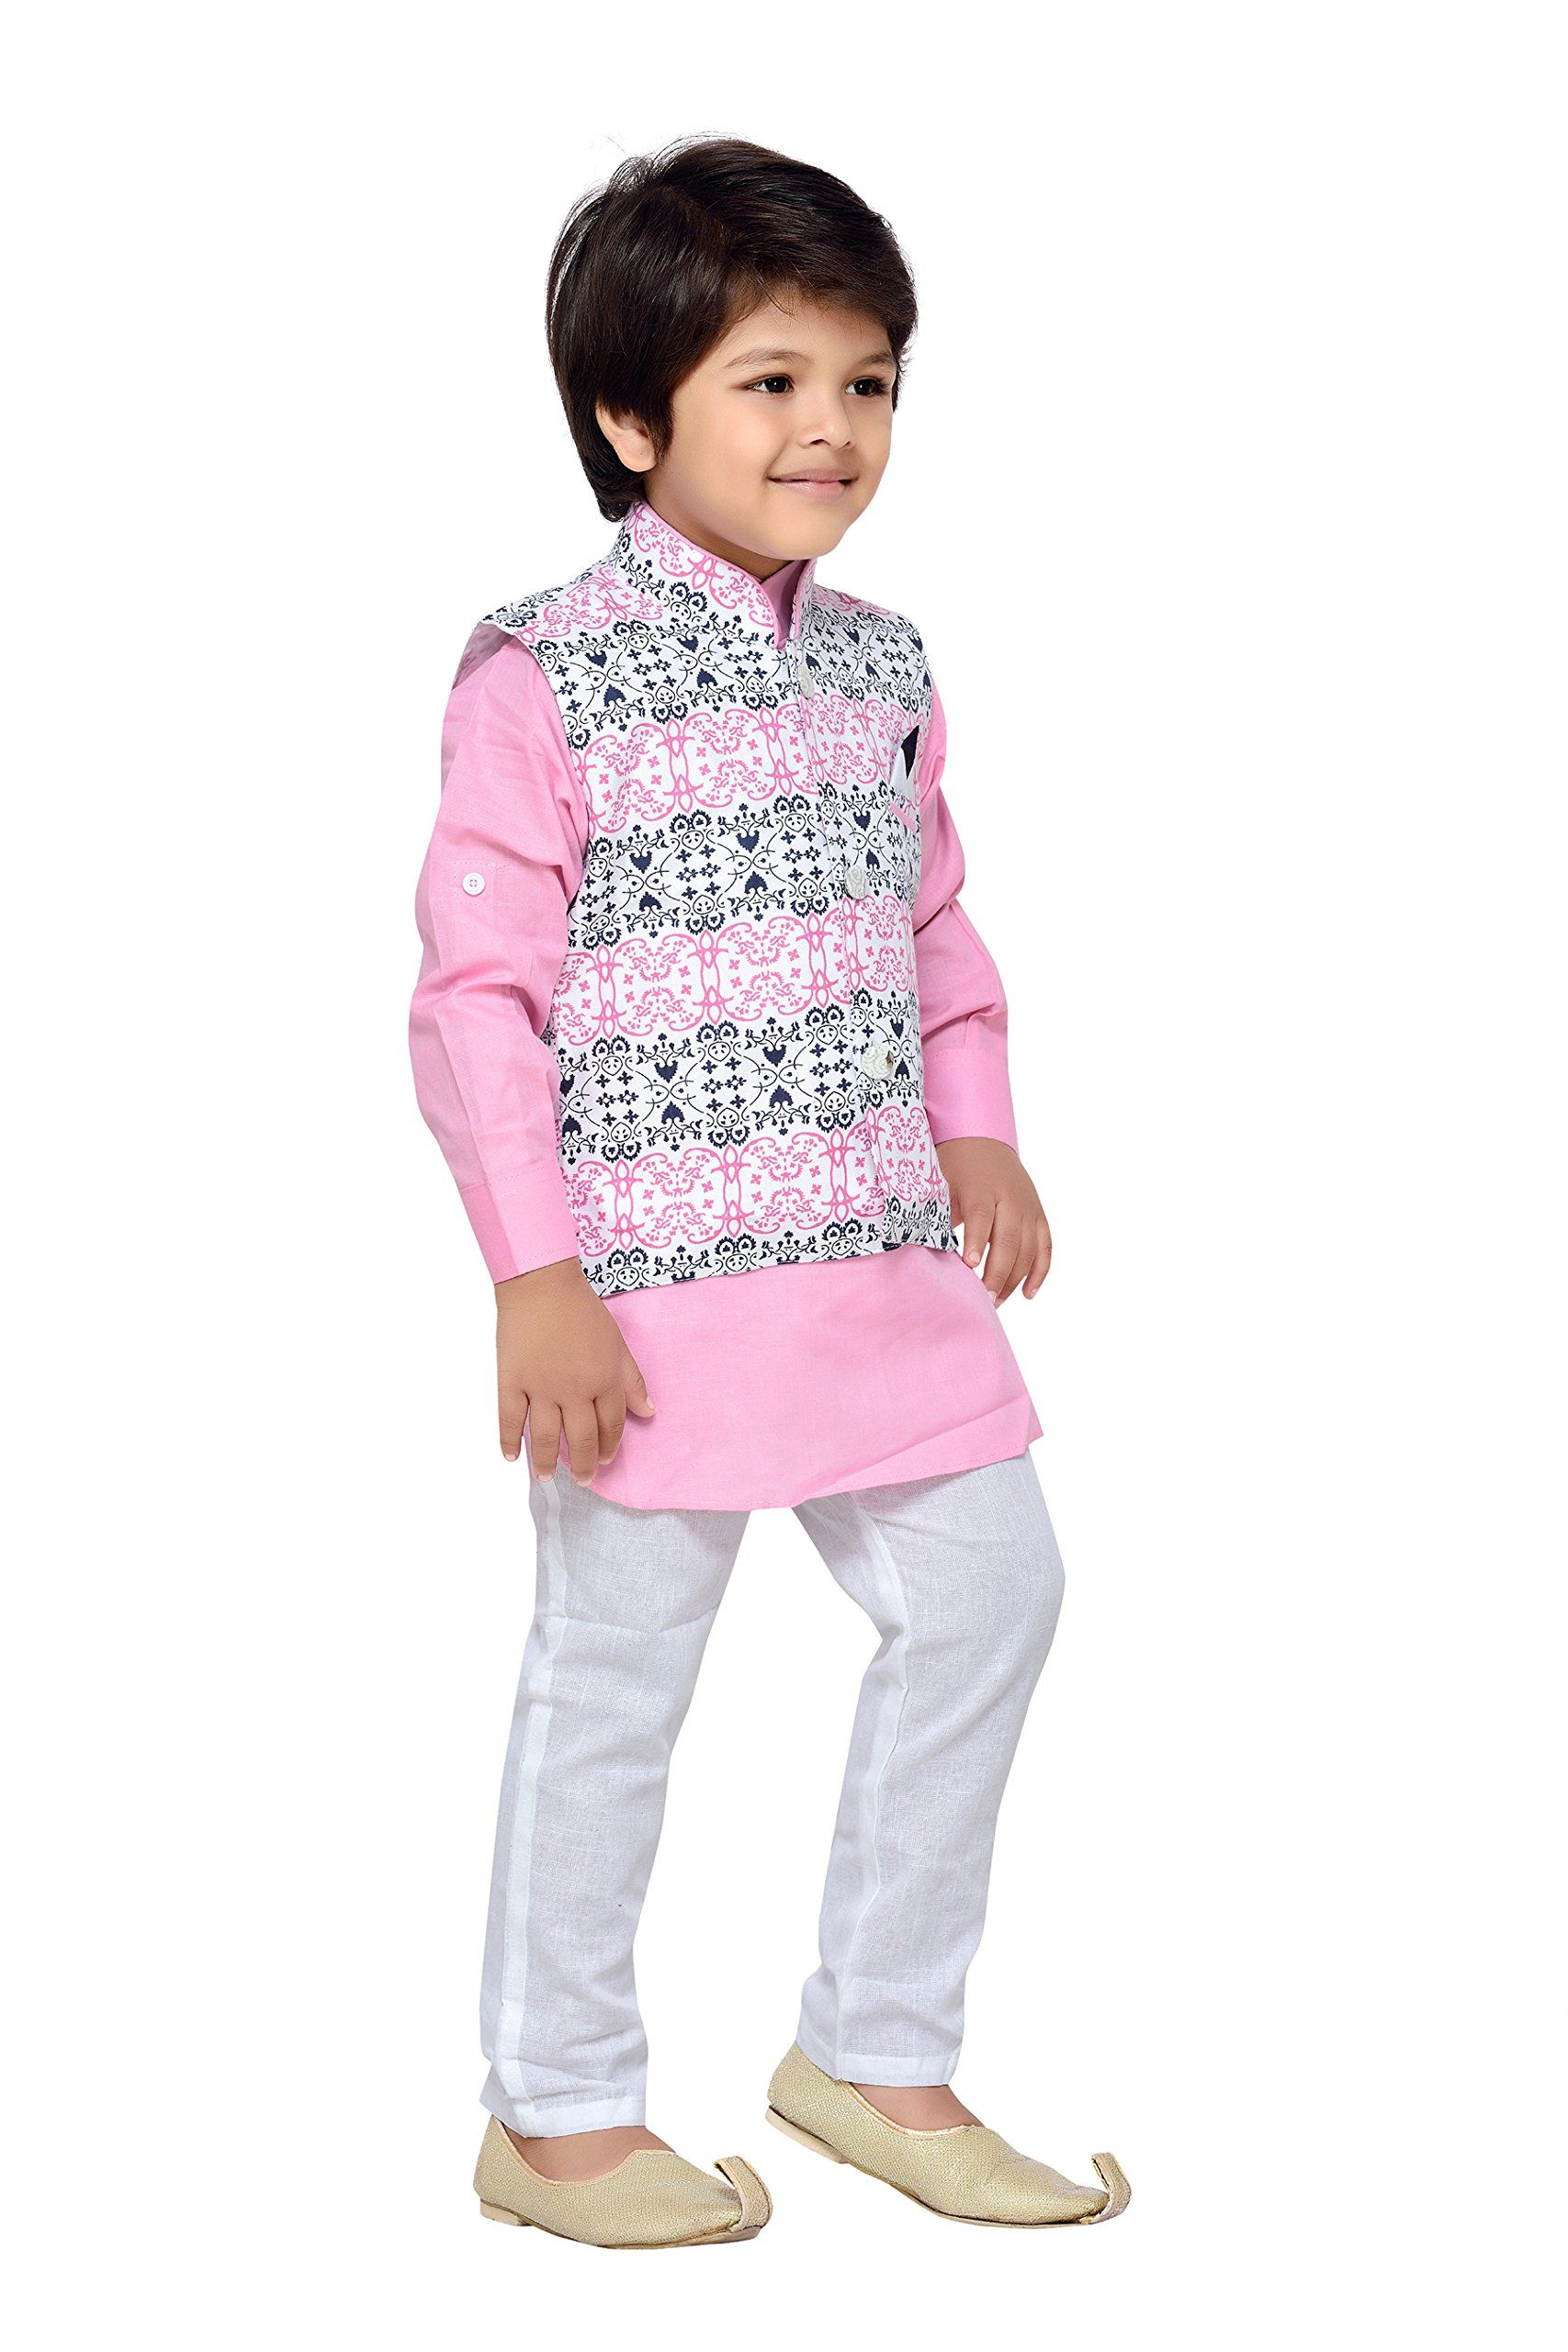 e8f0691566 AJ Dezines Kids Indian Wear Bollywood Style Kurta Pyjama Waistcoat for Baby  Boys 1205PINK1 *** Discover more by checking out the image web link.